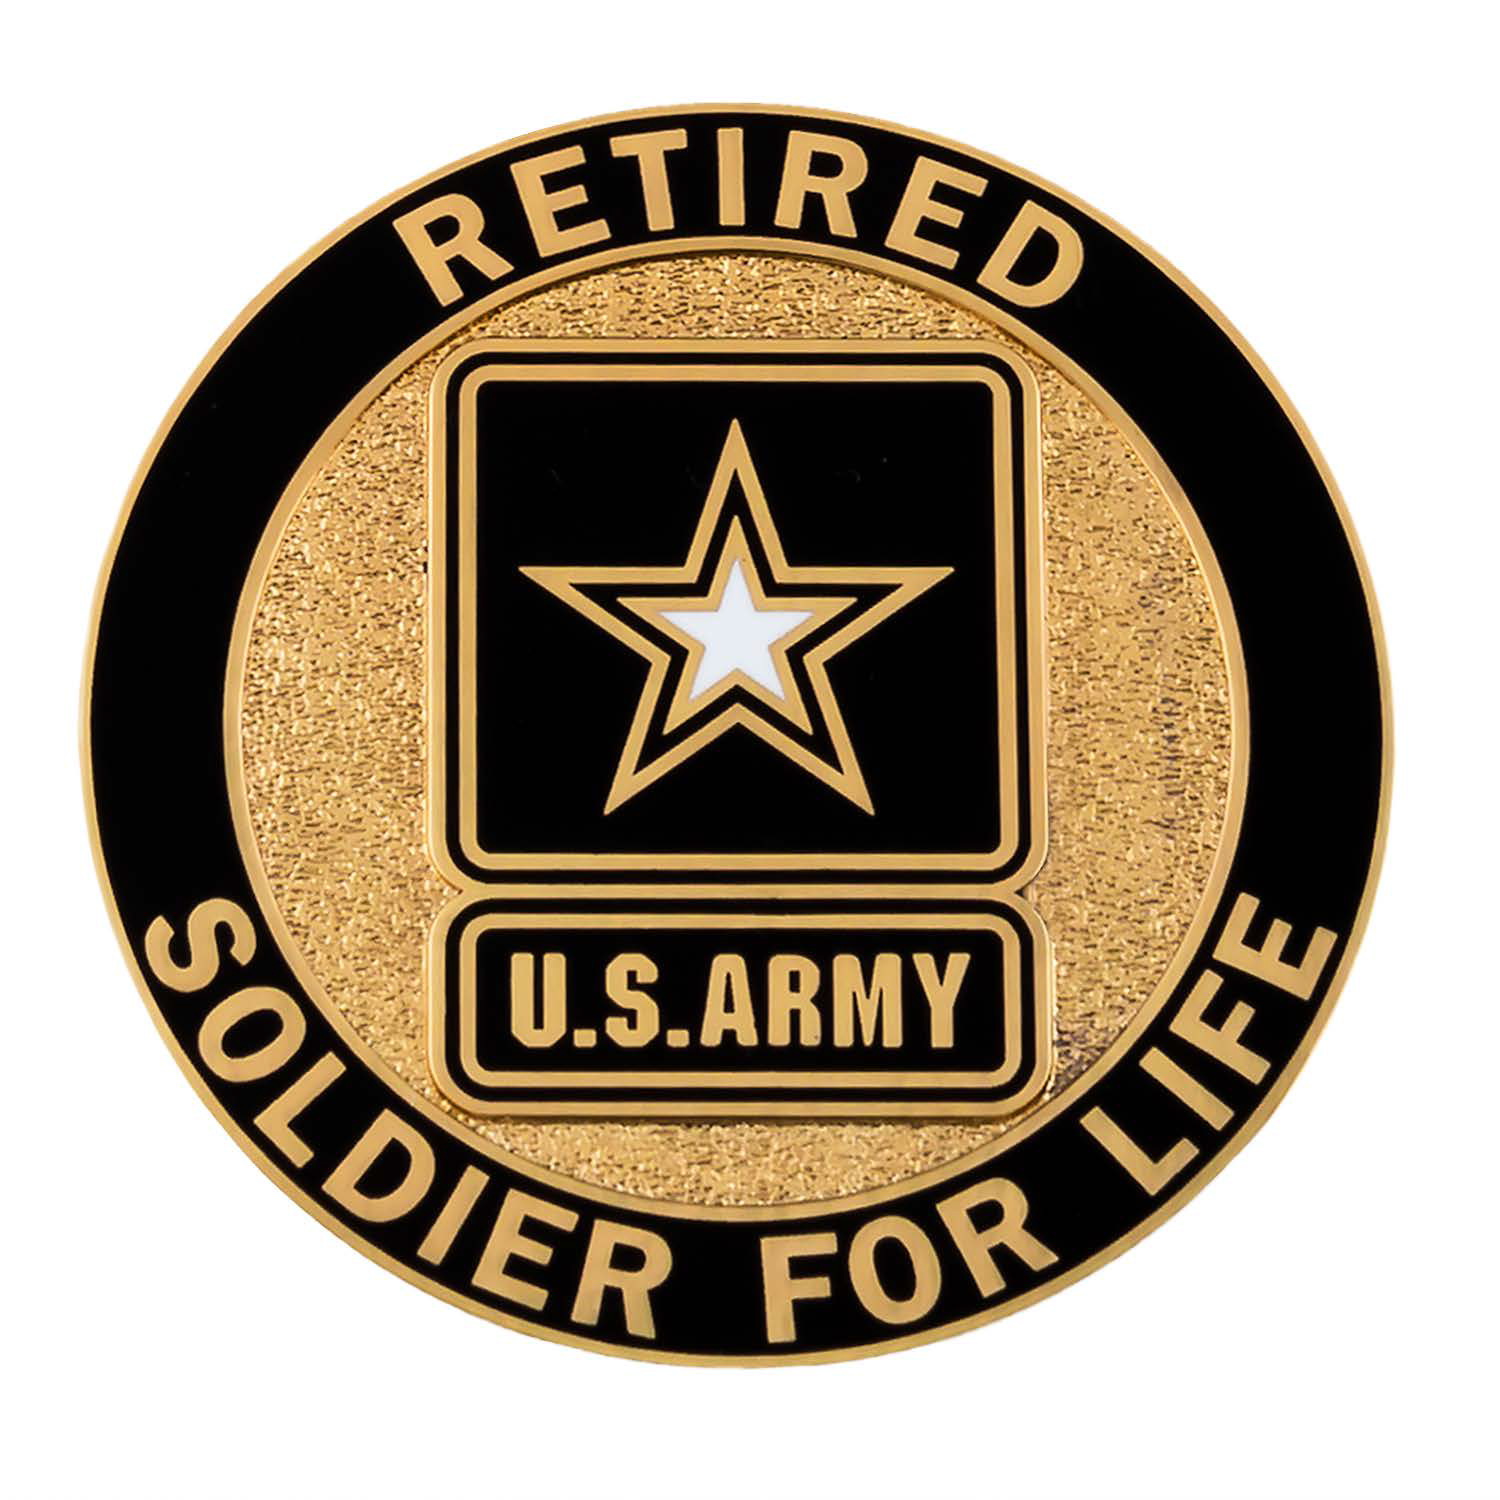 Retired Service Identification Badge Us Army Soldier Army Retirement Army Challenge Coins